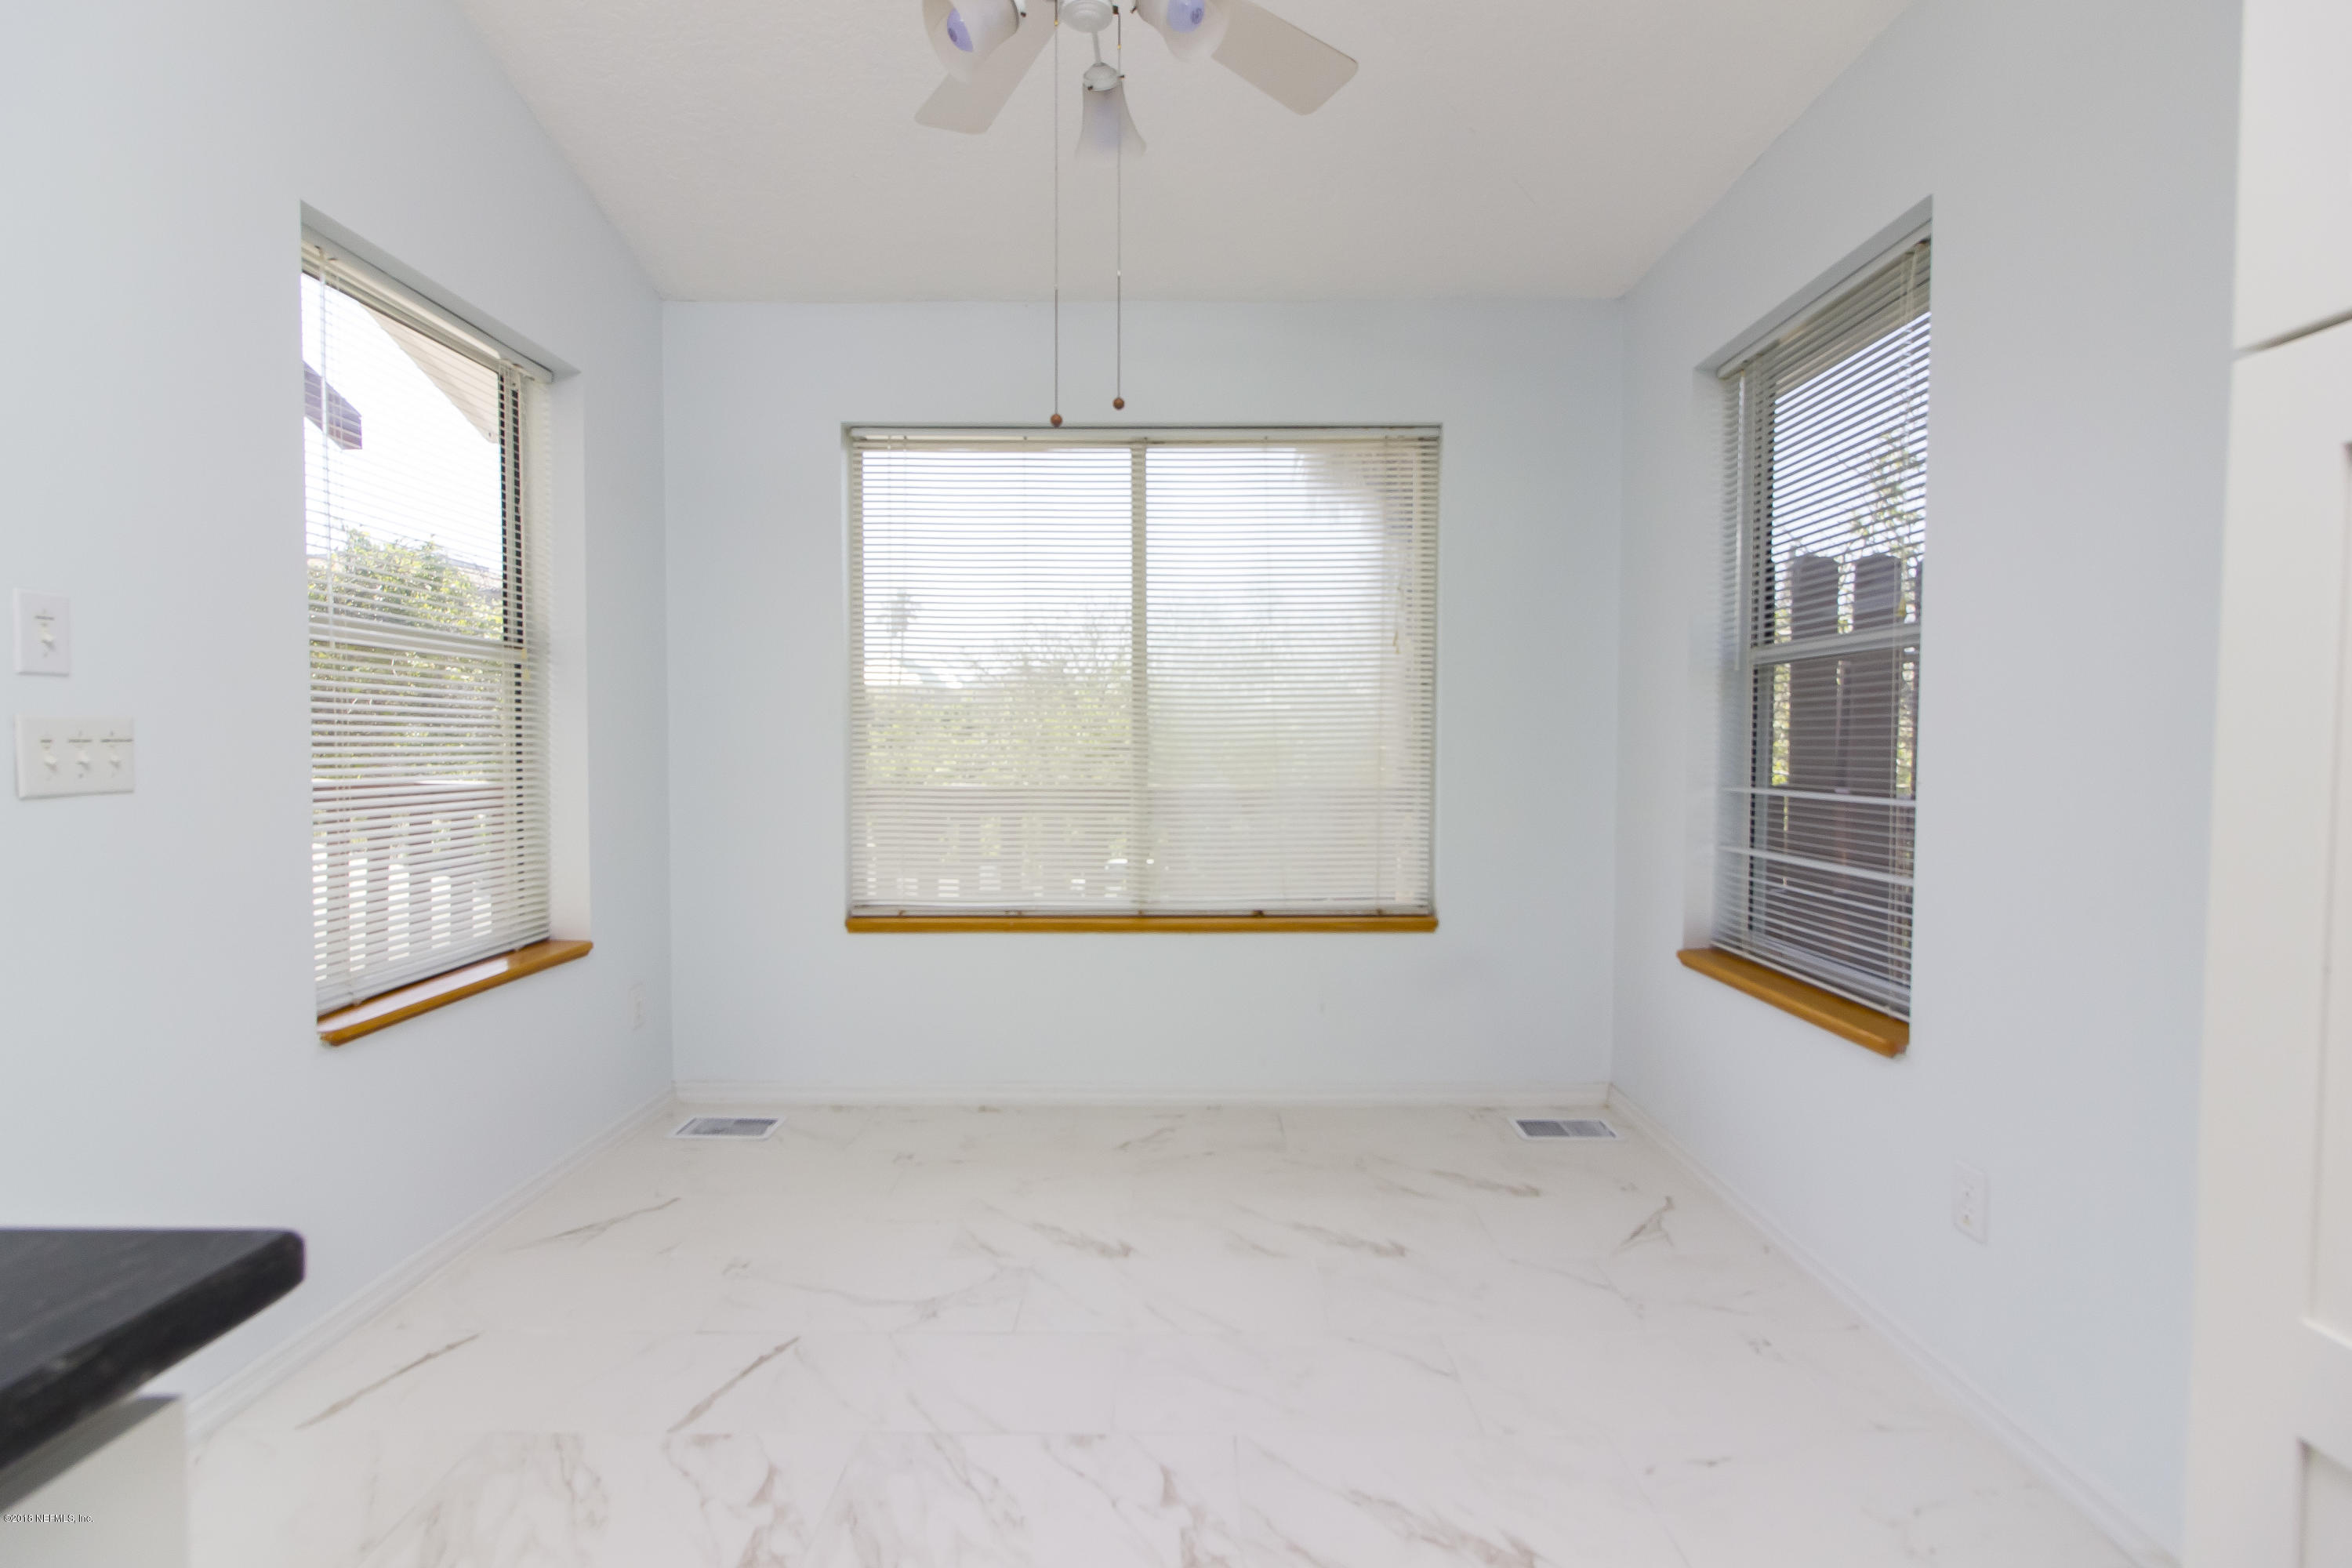 105 LANCASTER, ST AUGUSTINE, FLORIDA 32080, 3 Bedrooms Bedrooms, ,3 BathroomsBathrooms,Residential - single family,For sale,LANCASTER,931698